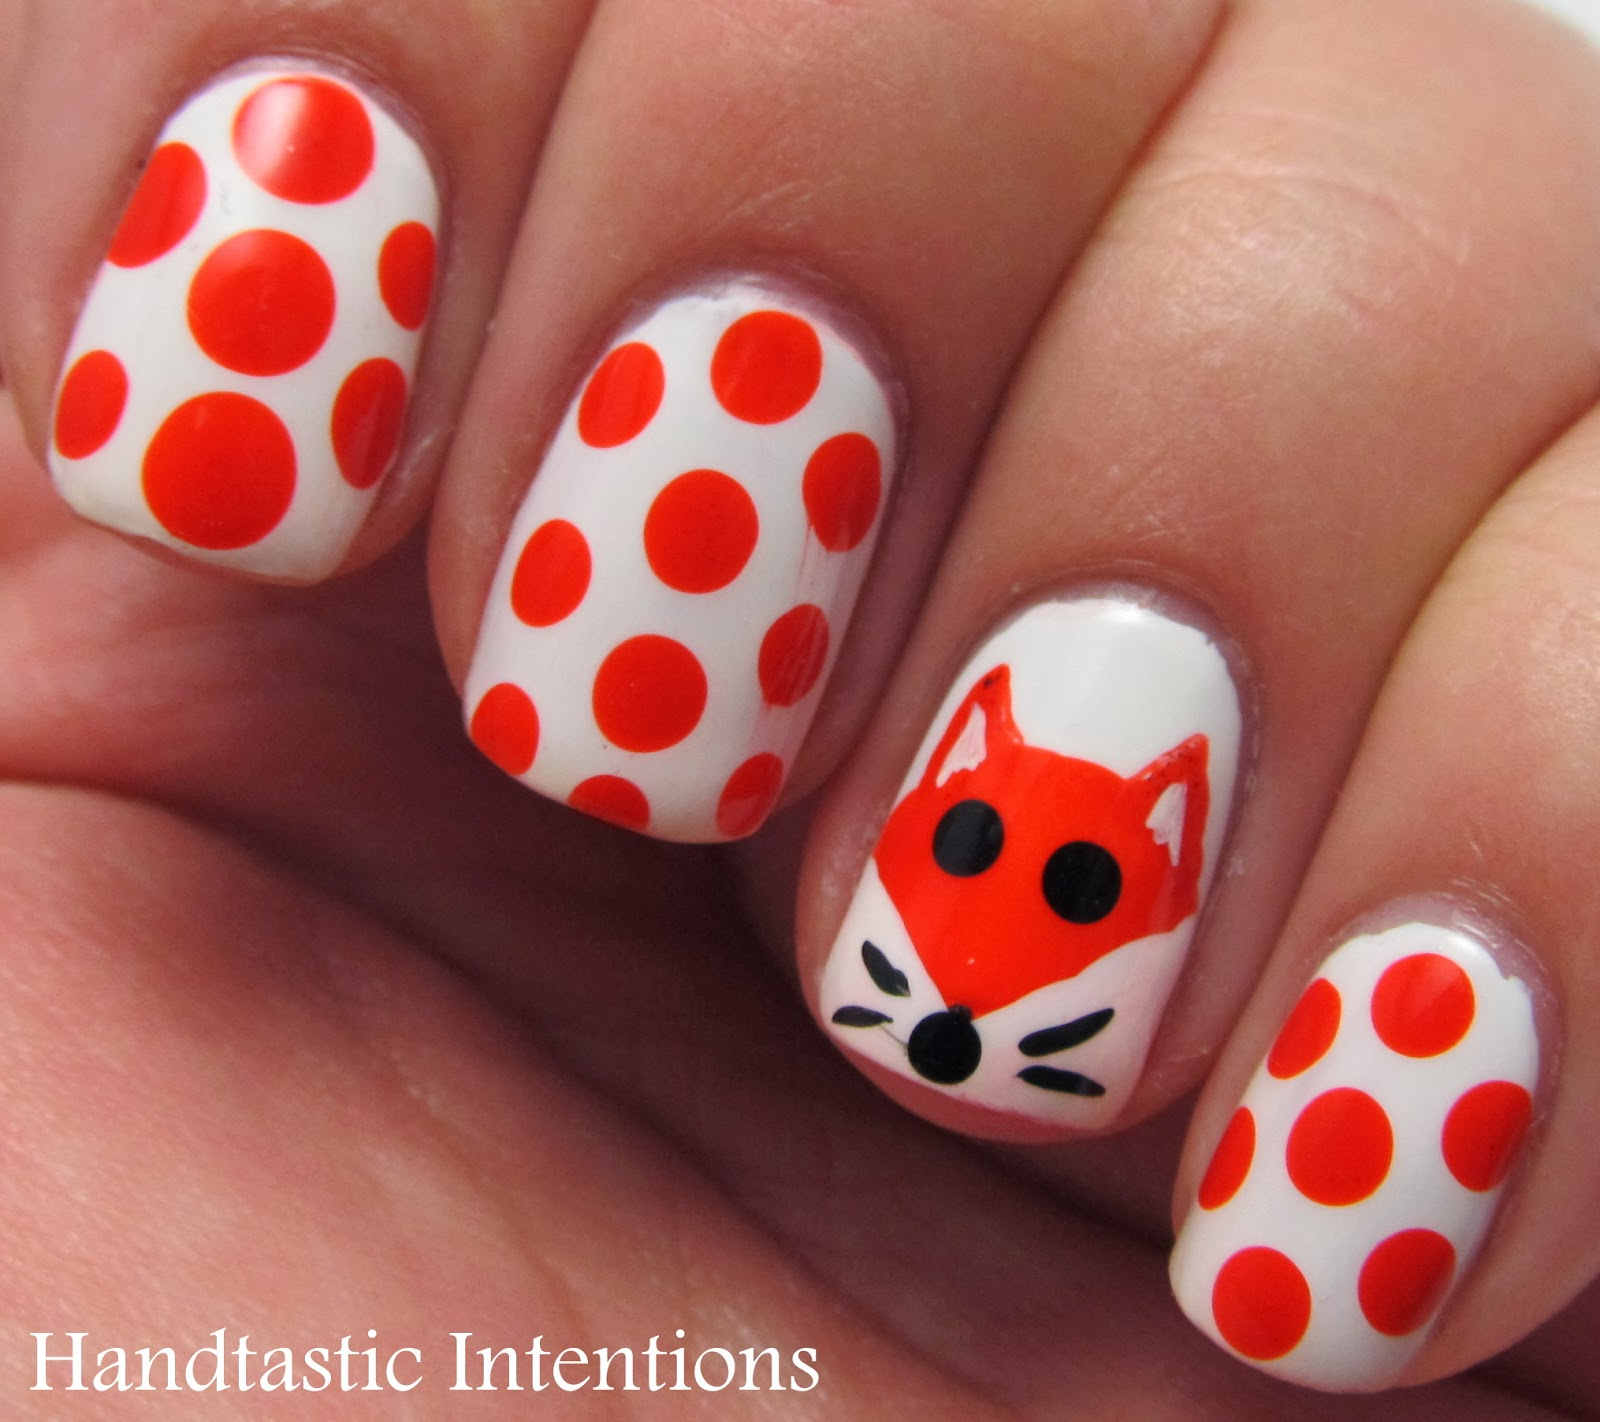 Fox Nail Designs: Handtastic Intentions: Nail Art: Fox For Nail Art November